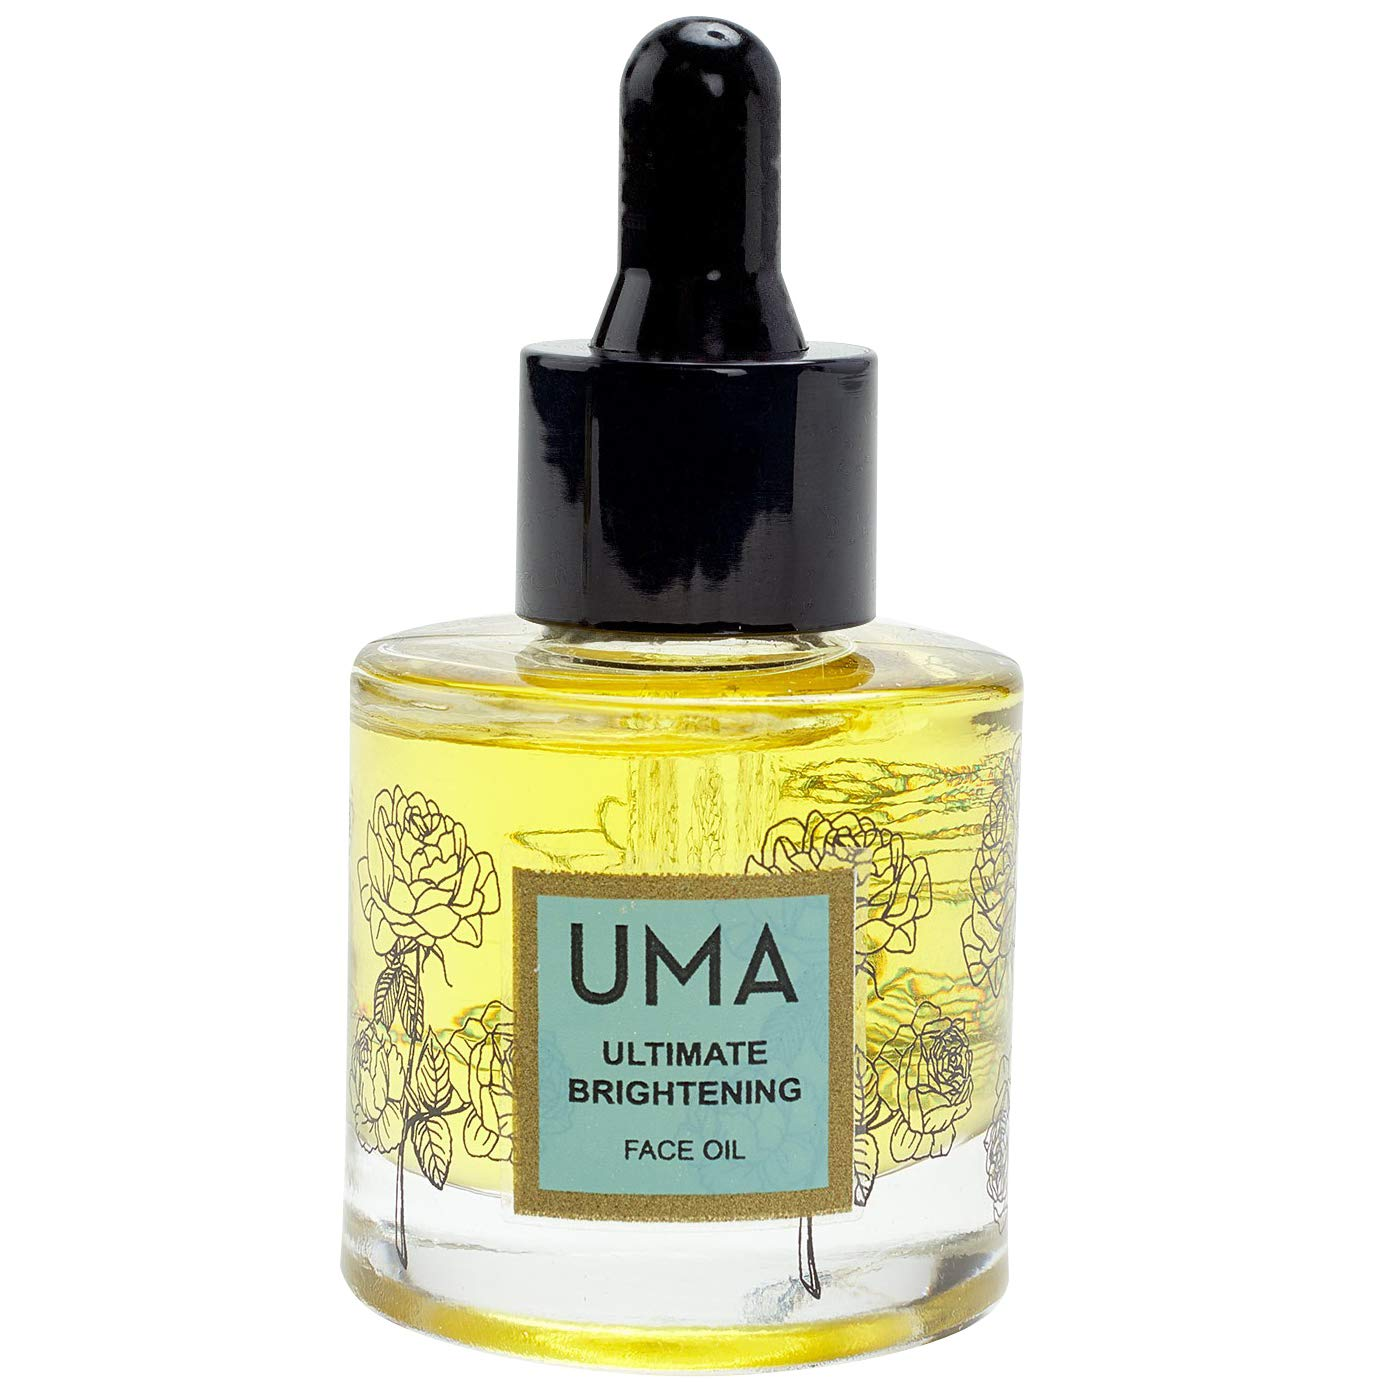 UMA - Ultimate Brightening Face Oil - 1 Oz